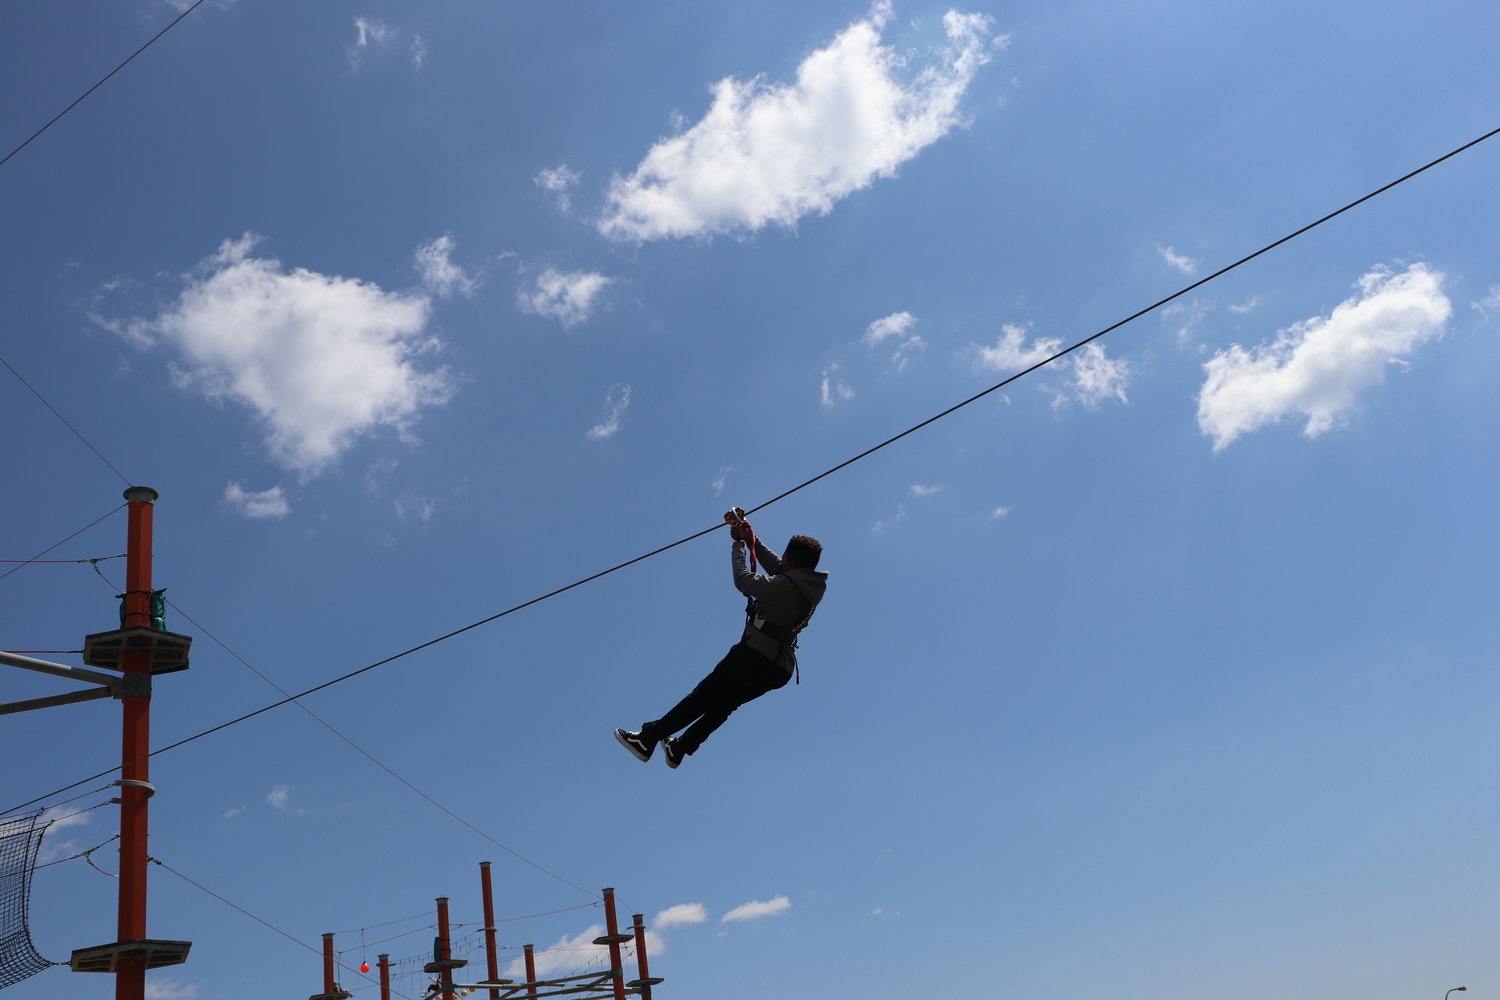 Taking a leap of faith on the 40-foot-high zip line course at WildPlay Element Parks Jones Beach.